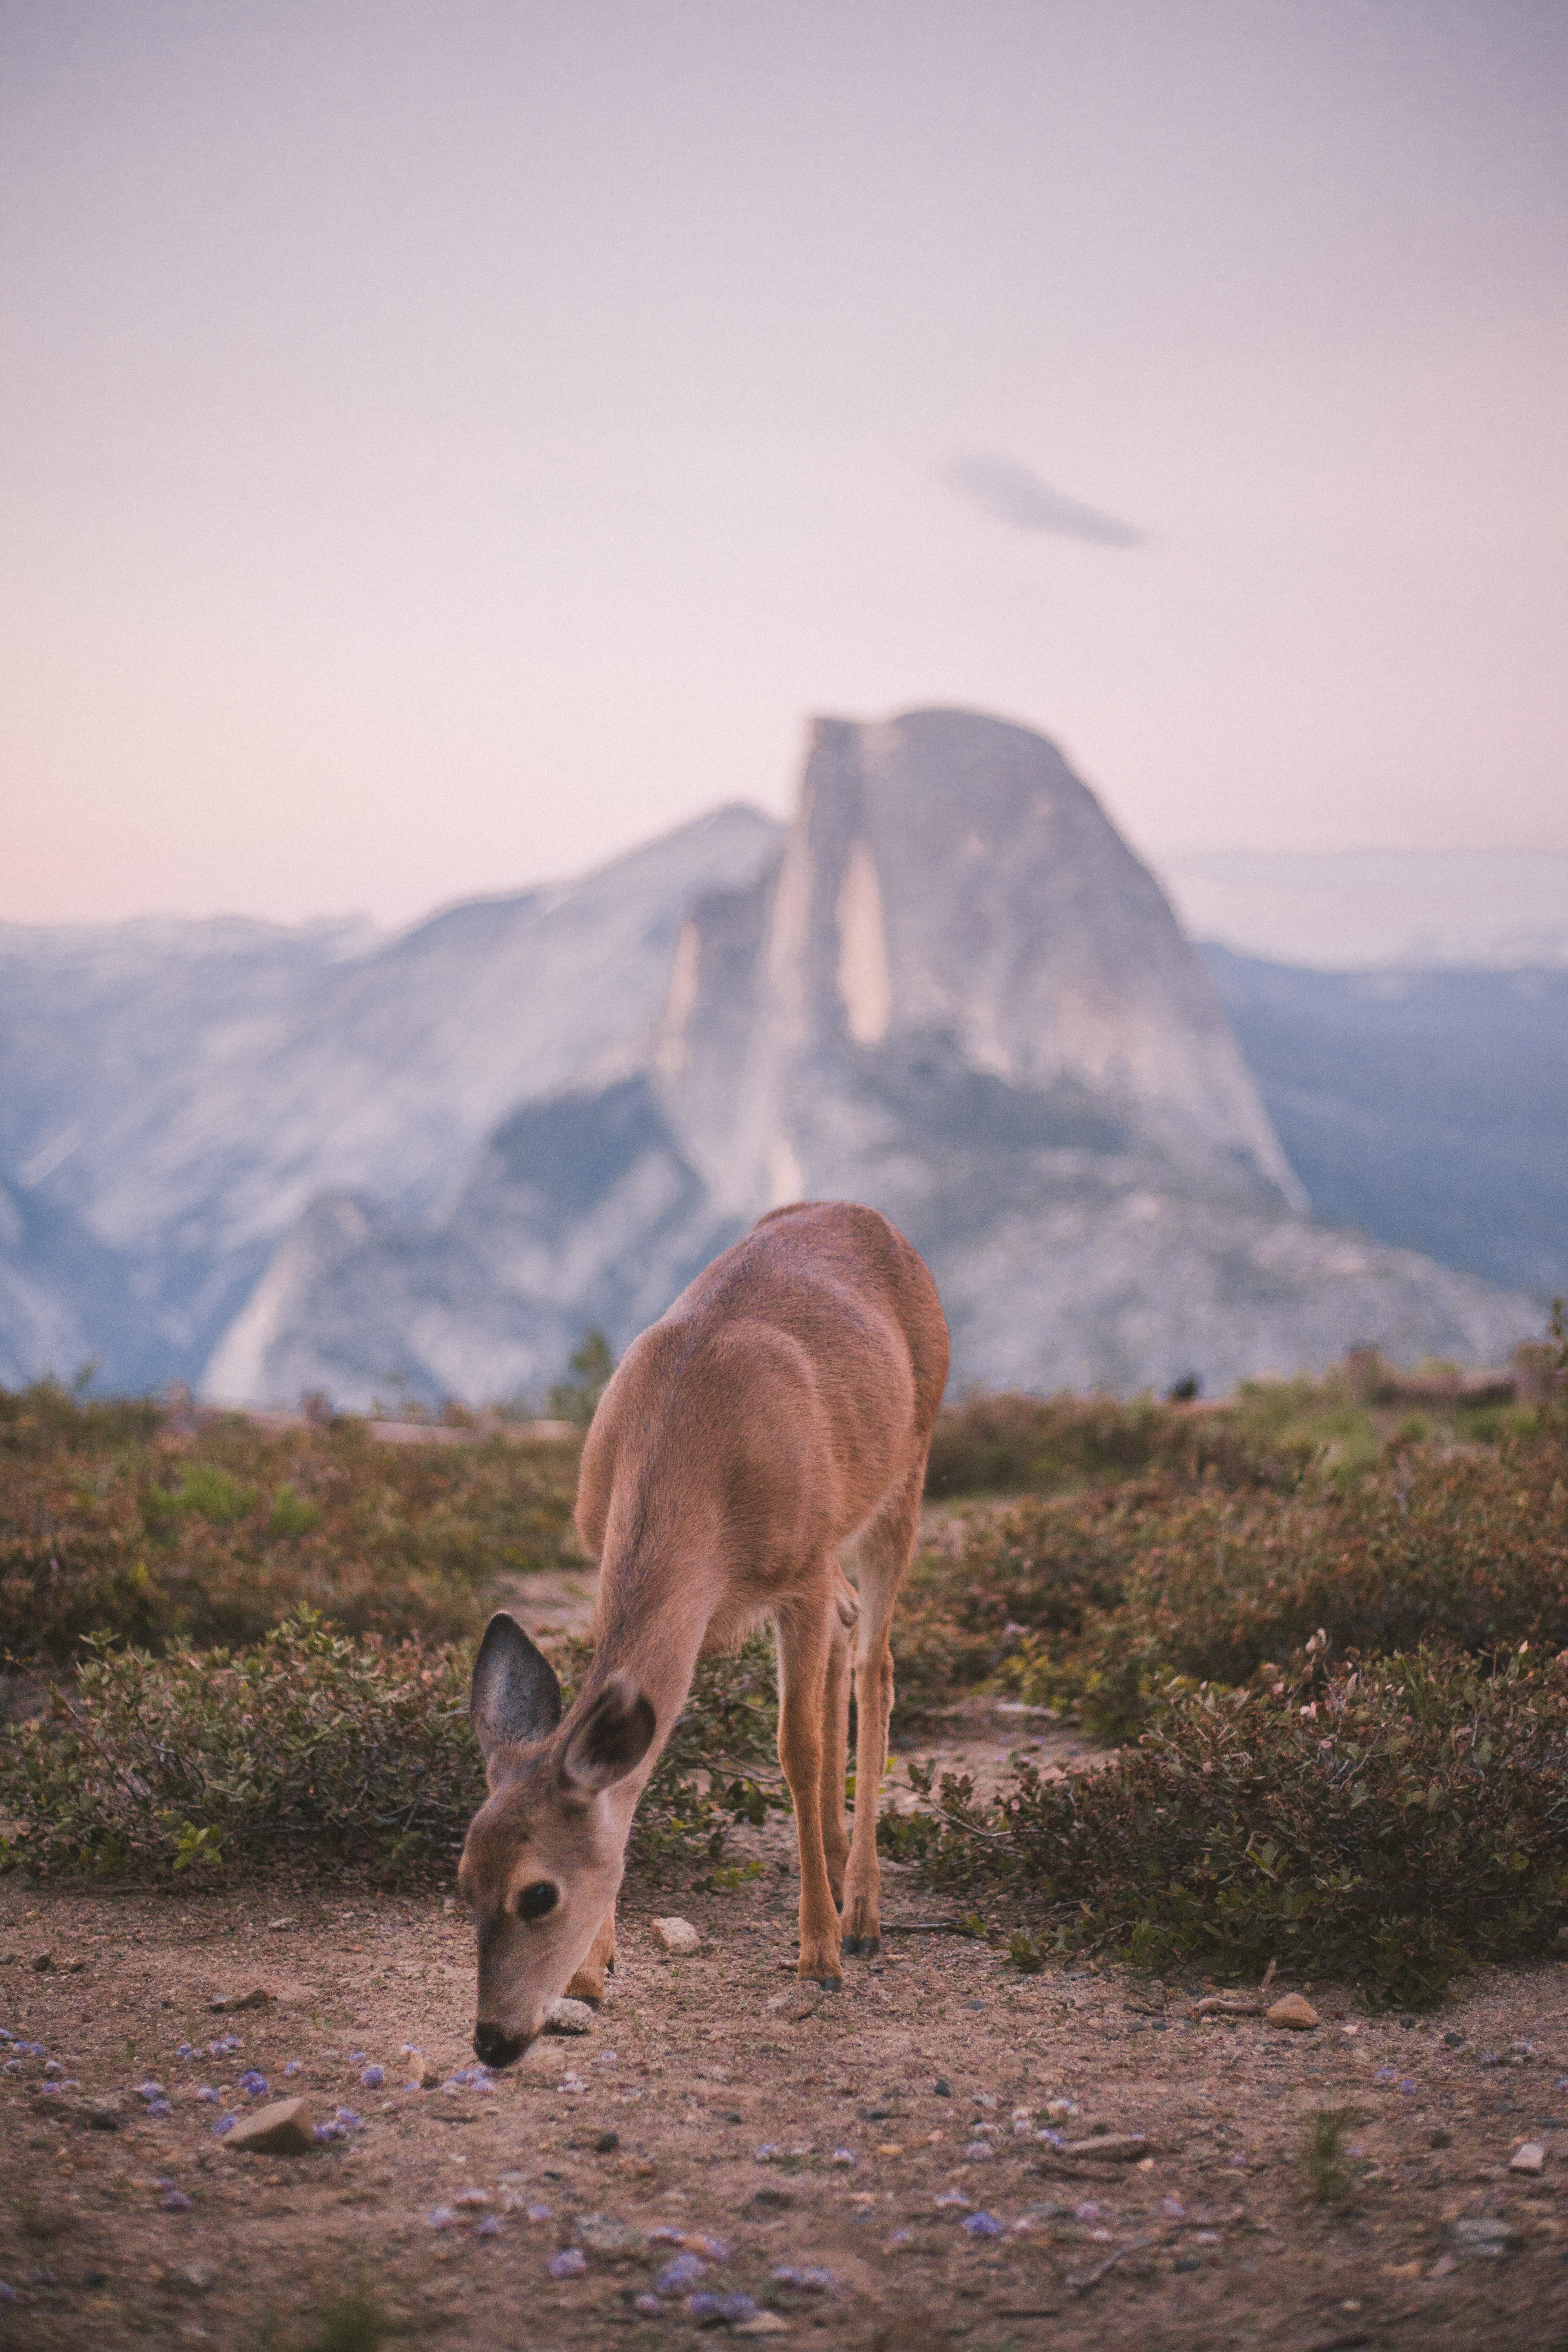 A deer grazing in a field with a mountain in the distance in Yosemite National Park